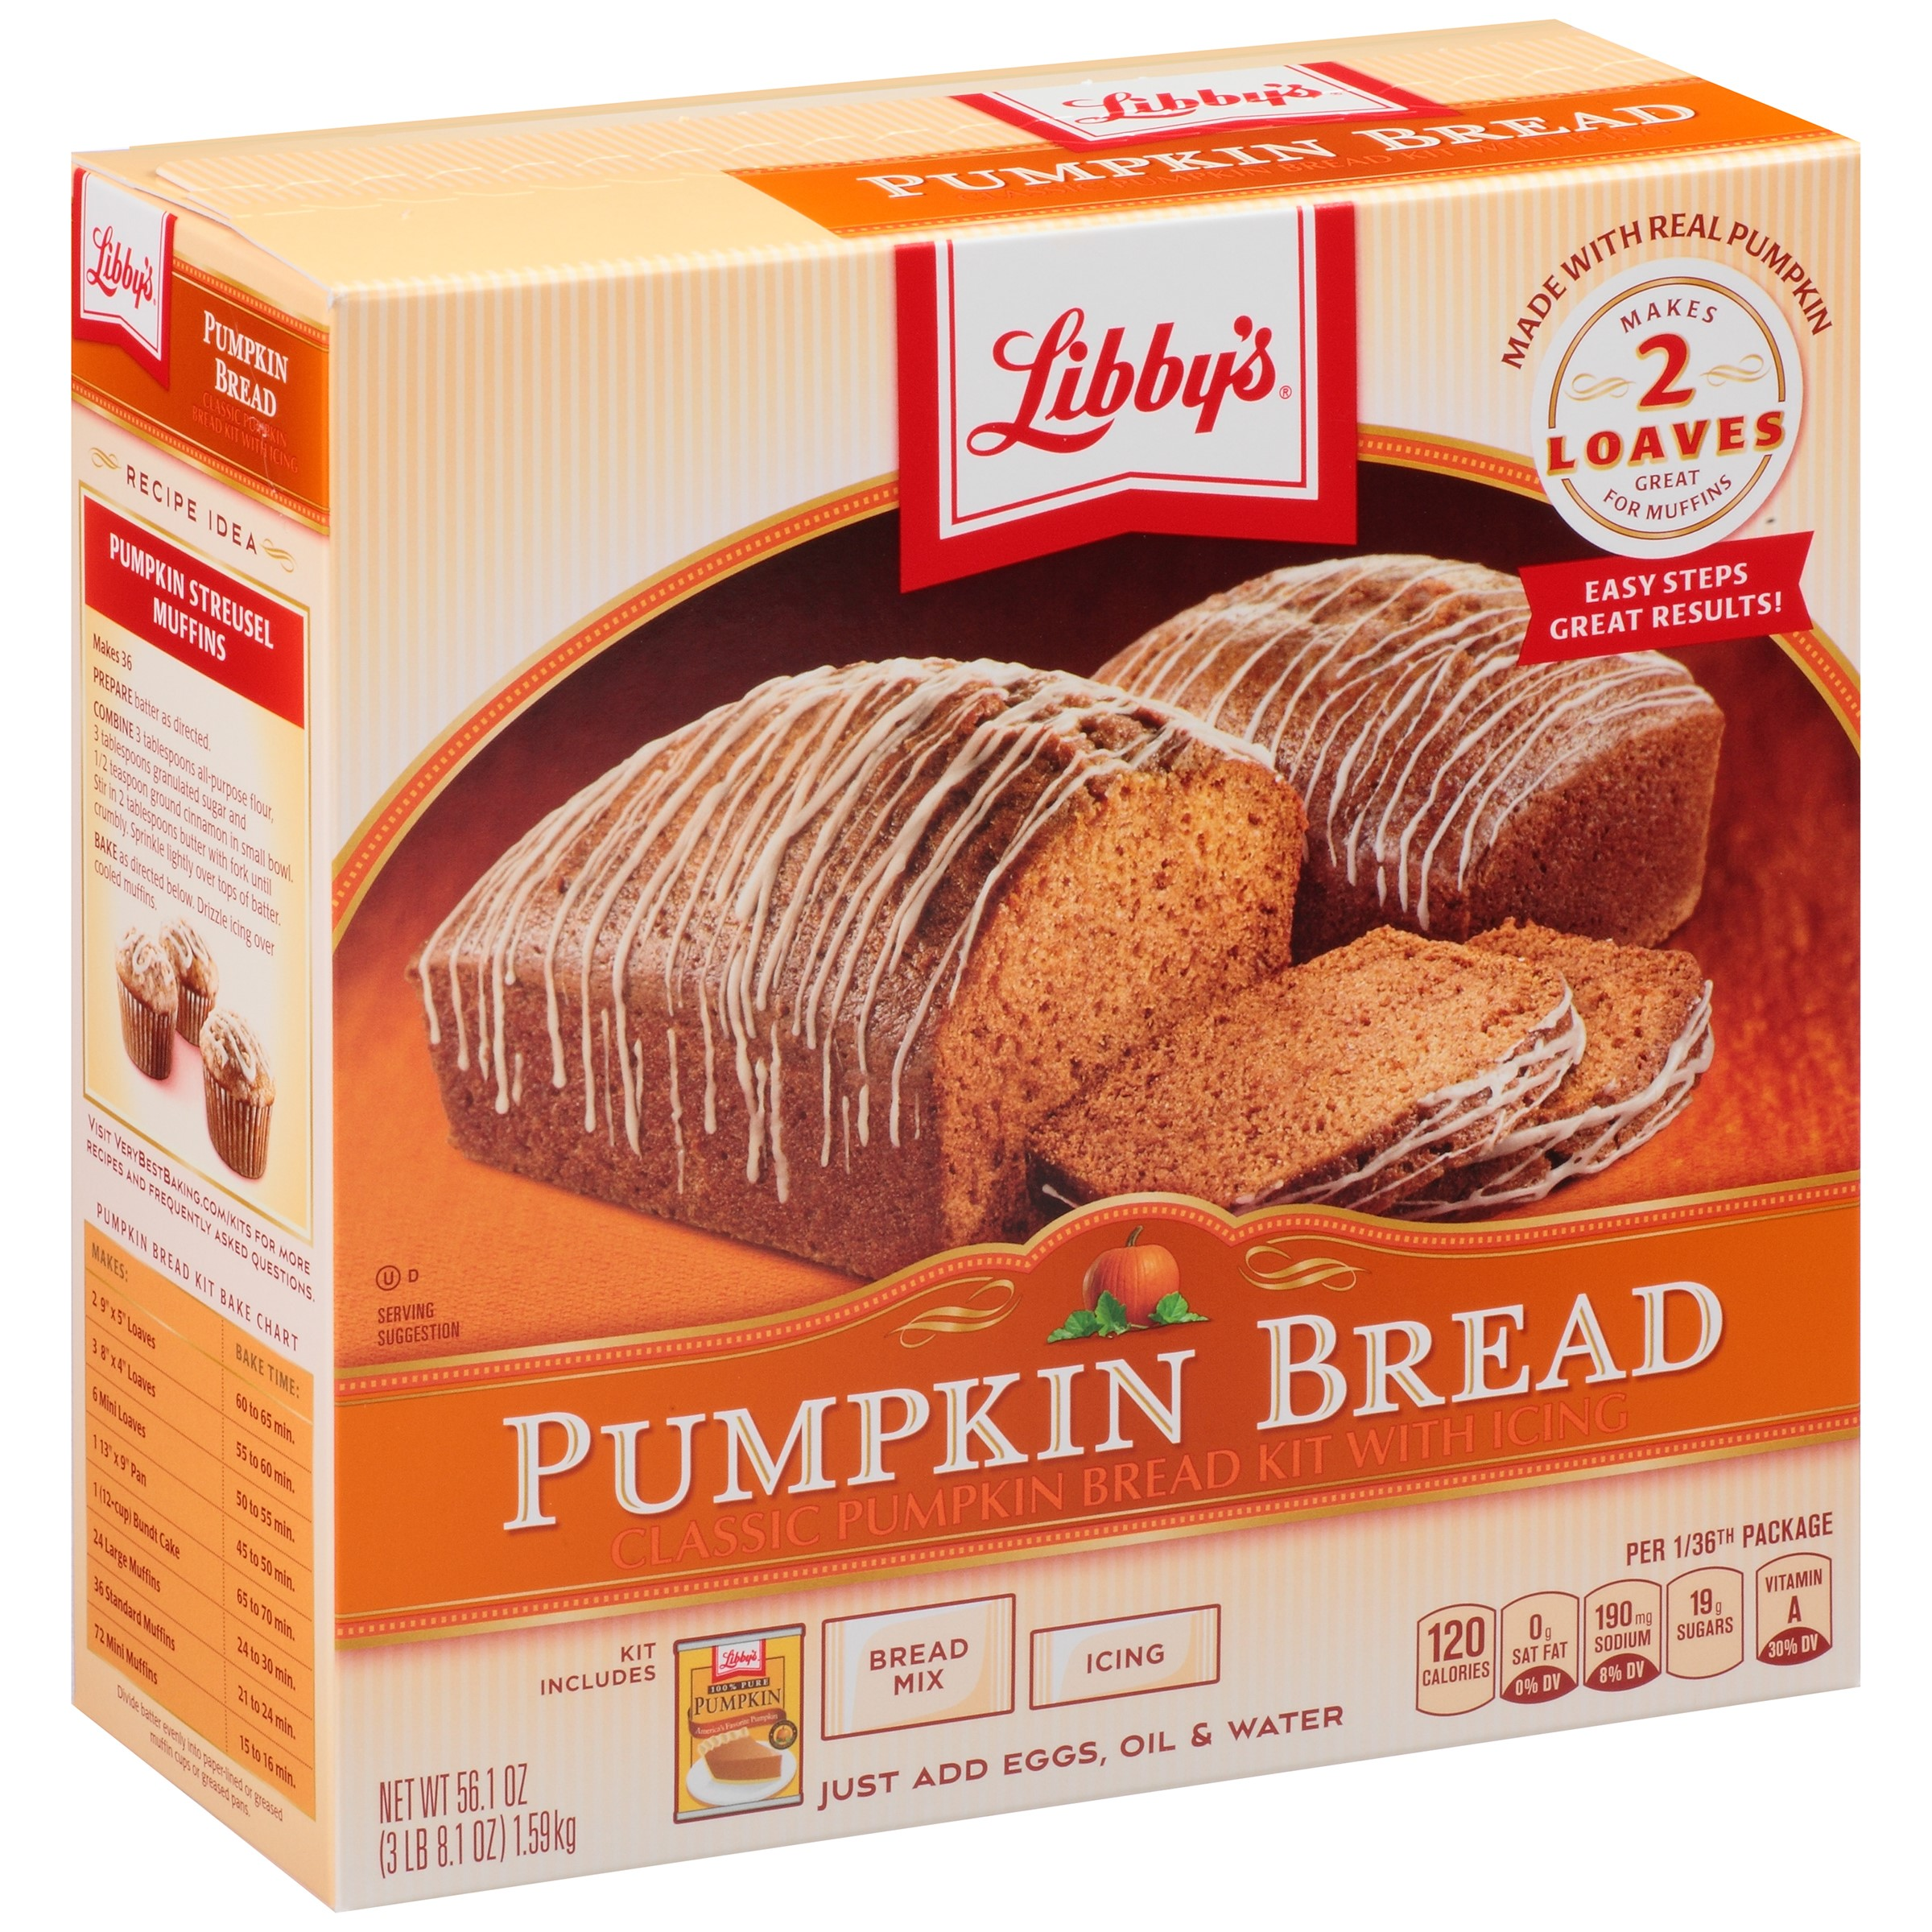 Libby's Pumpkin Bread Kit with Icing, 56.1 Oz